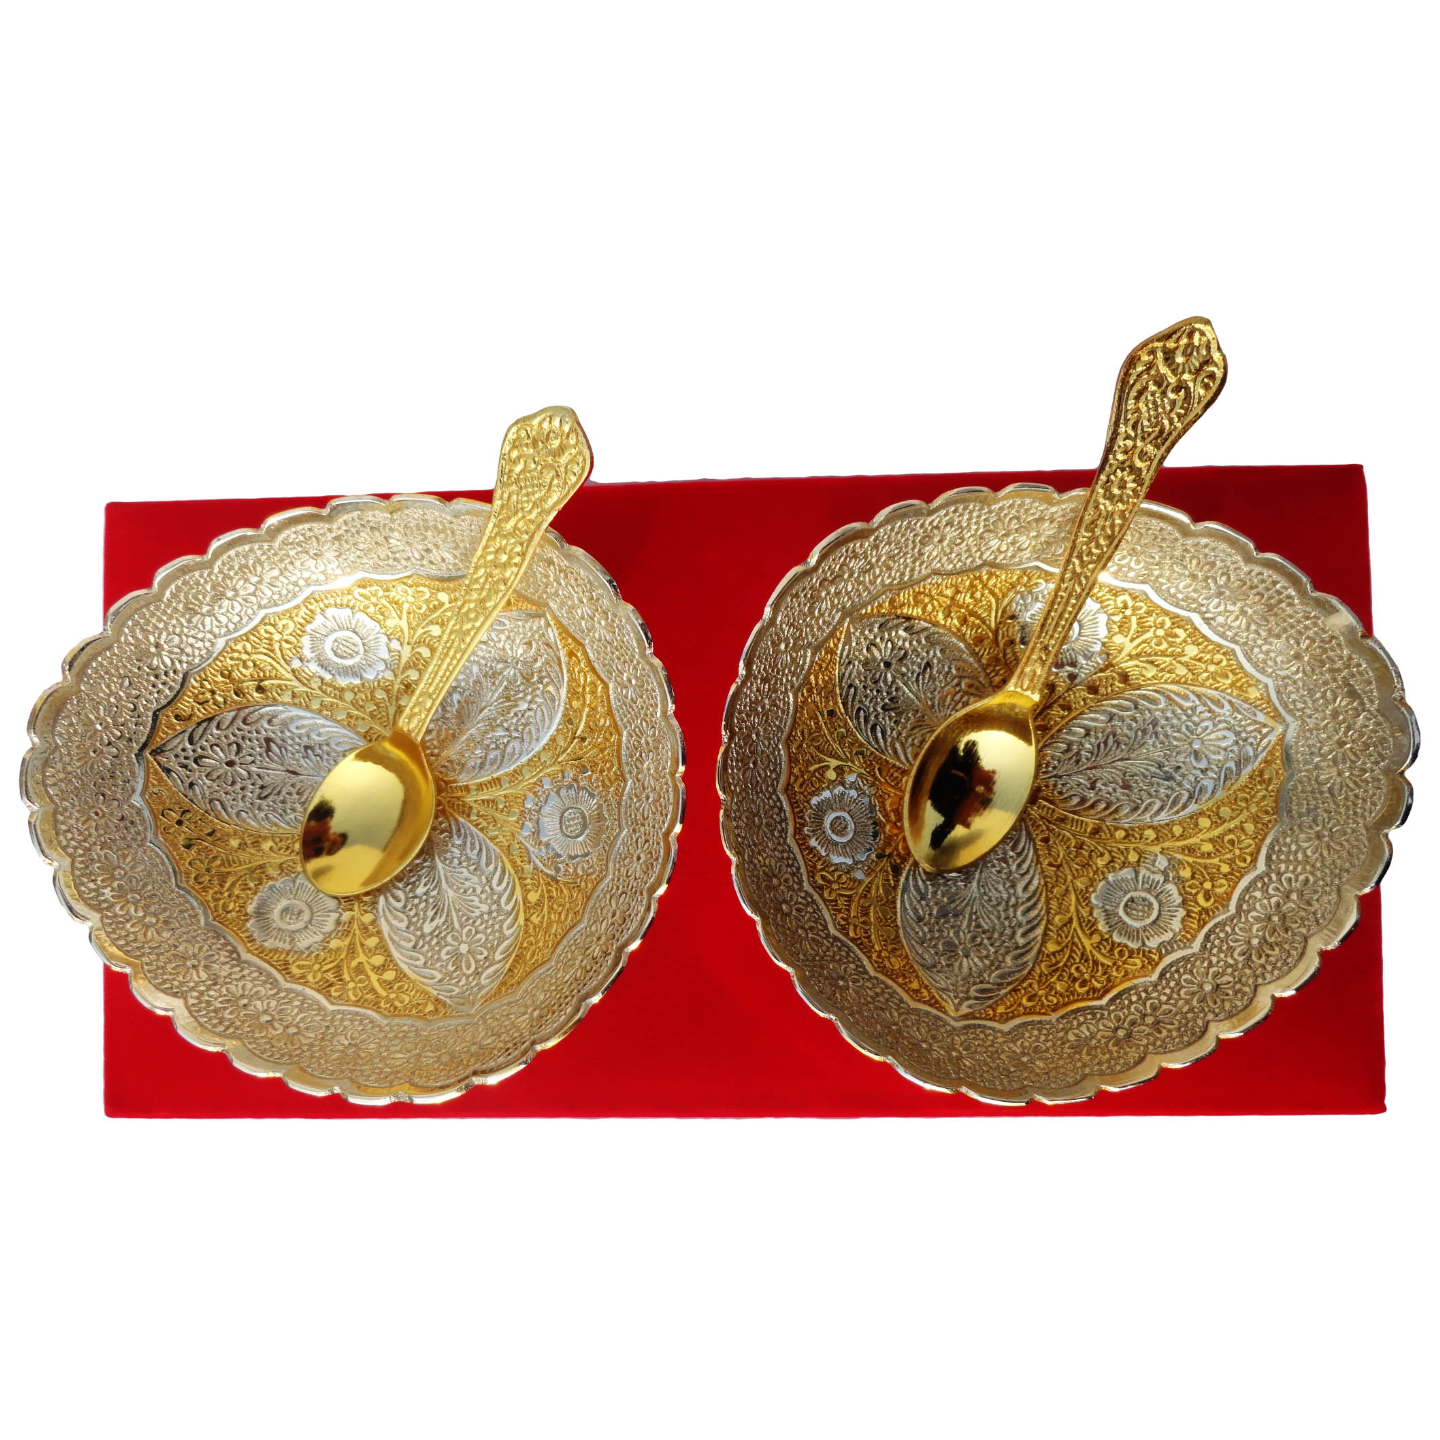 Bowl Set in Gold and Silver Finish with Spoon - 5 inch (B150)